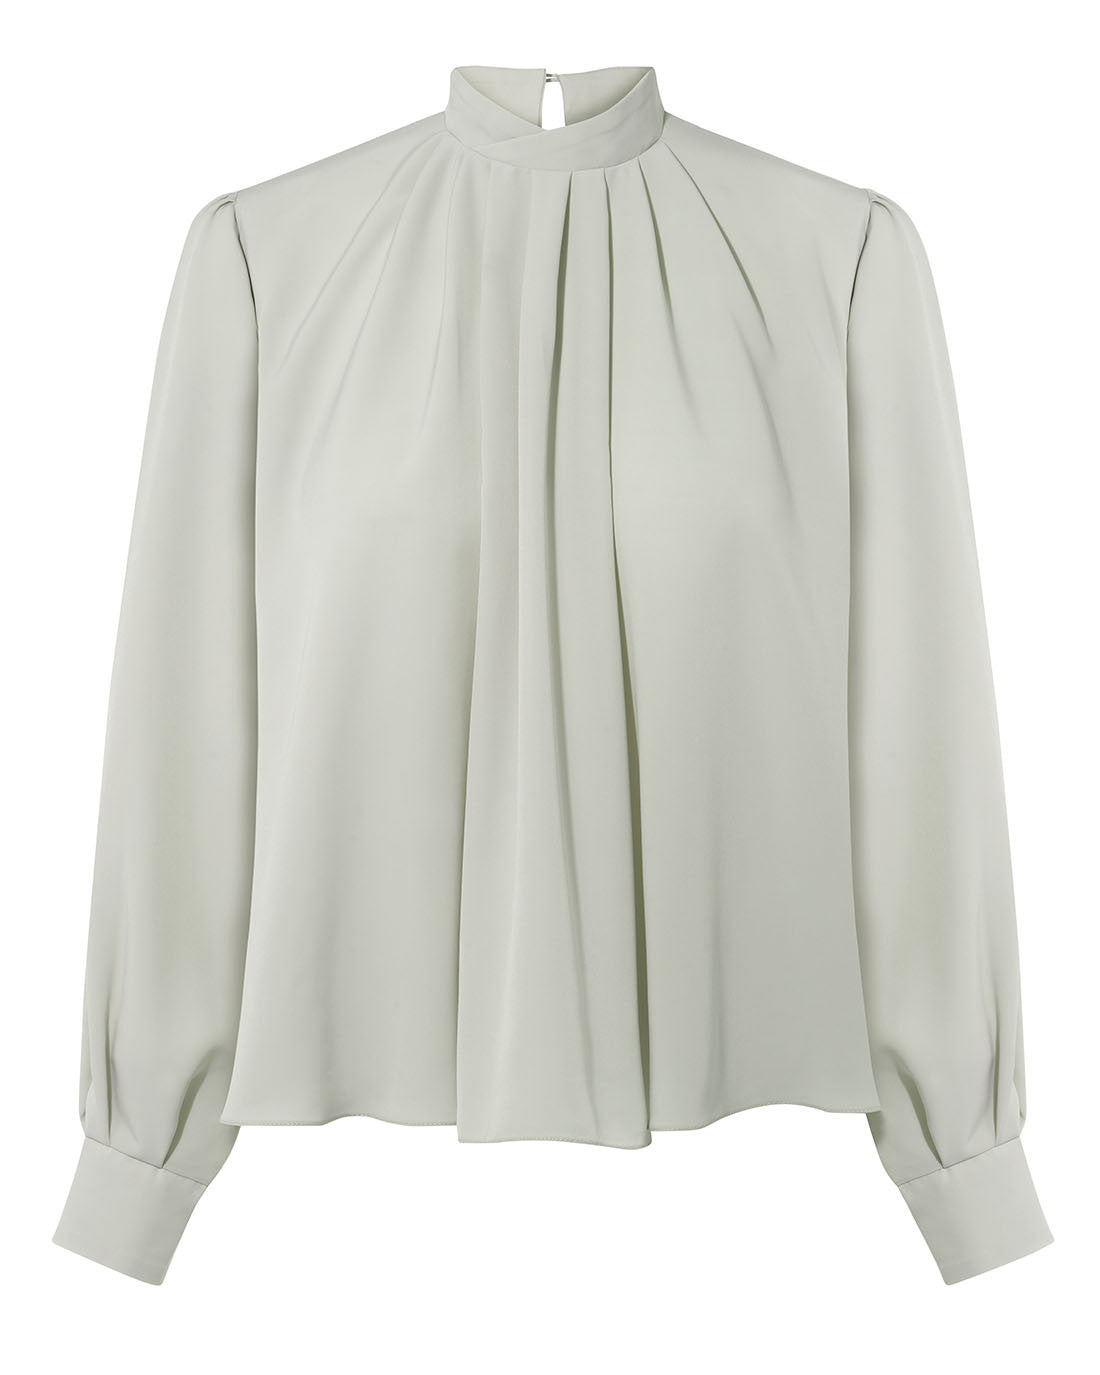 Edwardian collar high neck smart office blouse with full sleeves for work pale green